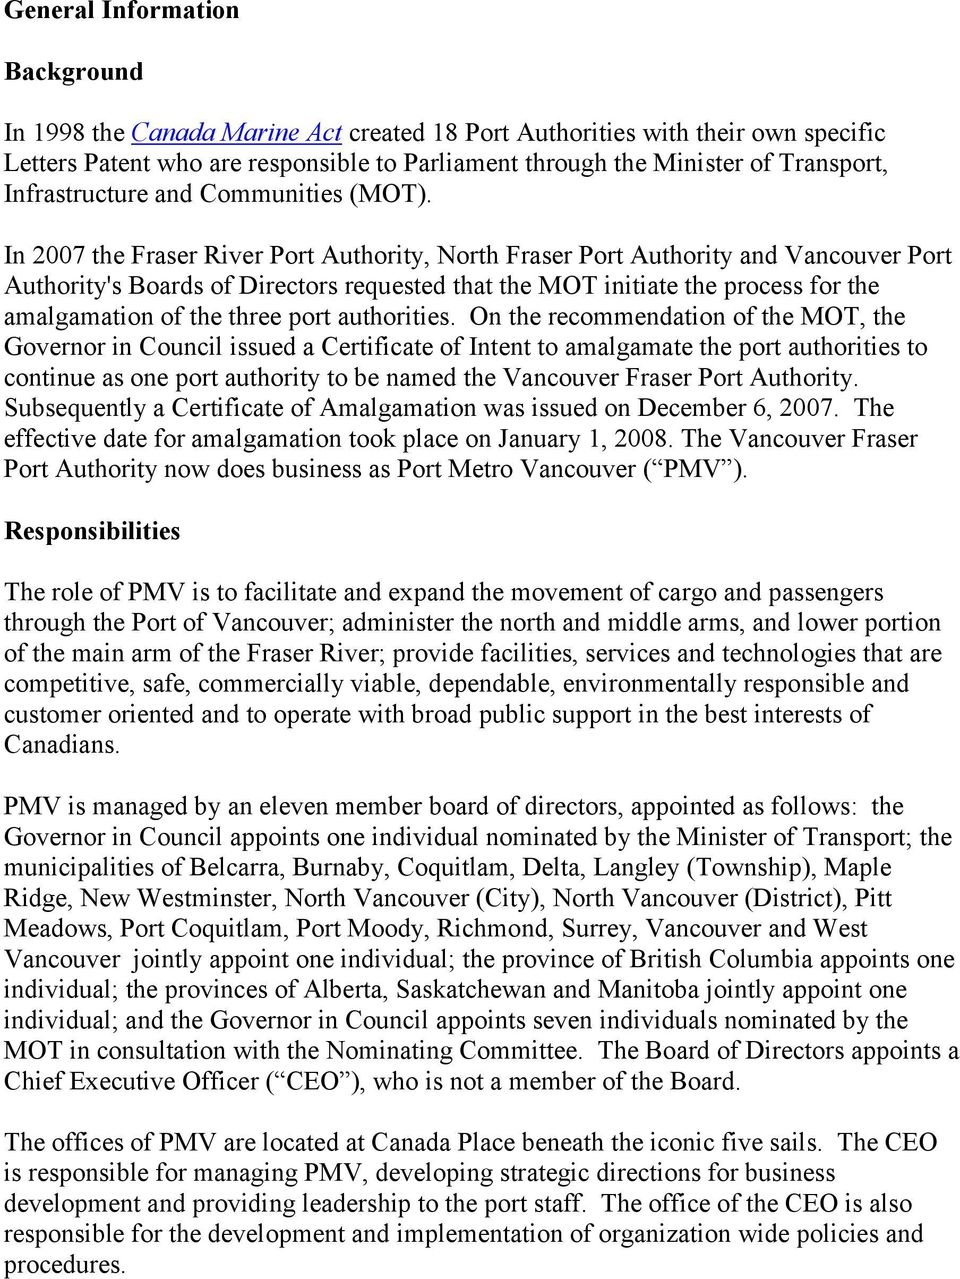 In 2007 the Fraser River Port Authority, North Fraser Port Authority and Vancouver Port Authority's Boards of Directors requested that the MOT initiate the process for the amalgamation of the three